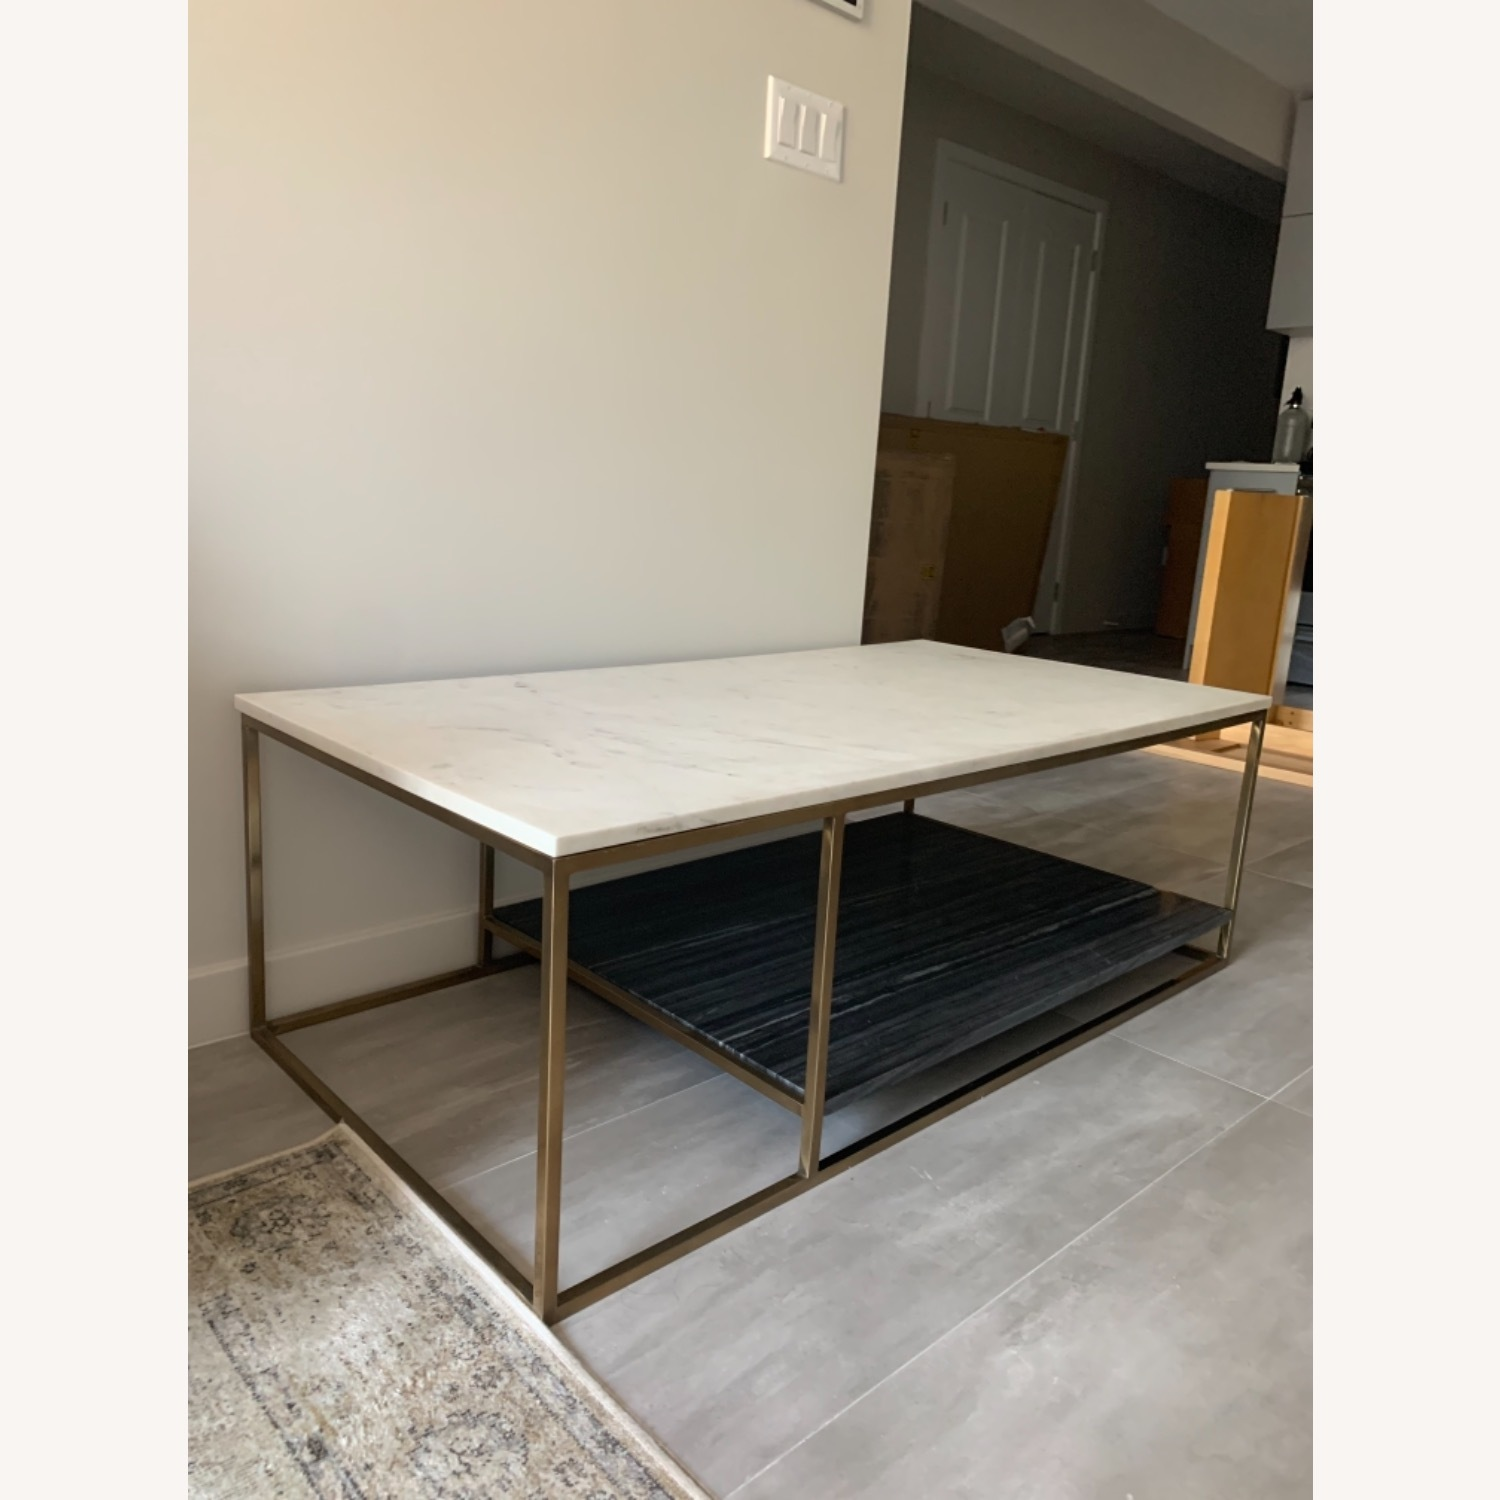 CB2 Grey and White Marble Coffee Table - image-1